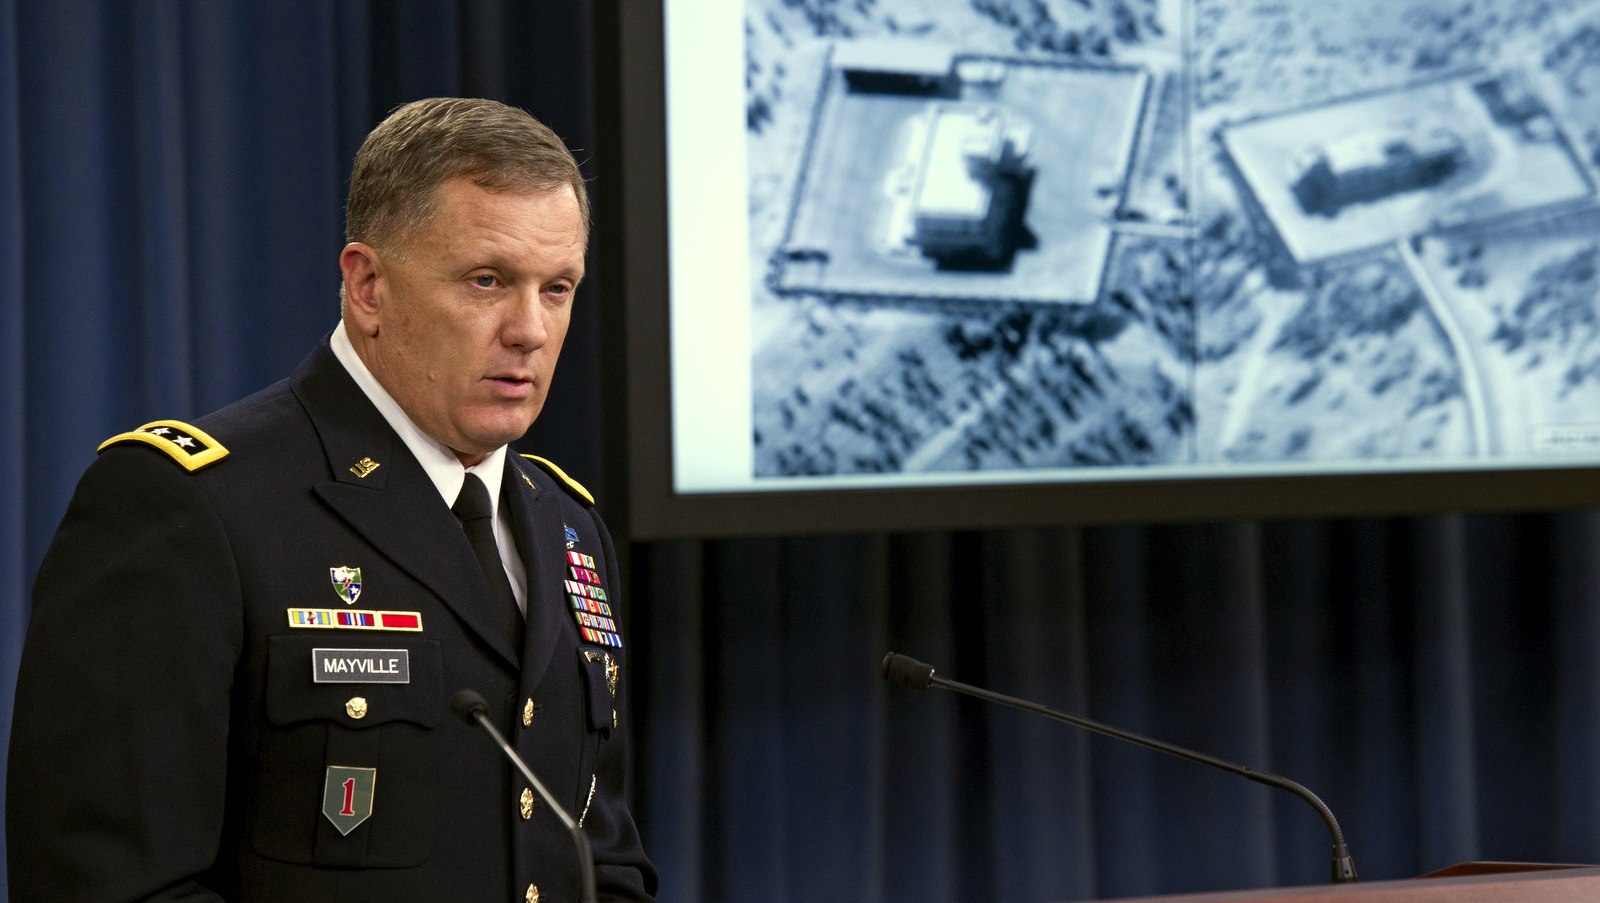 Army Lt. Gen. William Mayville speaks about US operations in Syria, following U.S. military strikes against 17 separate targets connected to an al-Qaida cell in Syria known as the Khorasan Group, U.S. officials say, Sept. 23, 2014. (AP/Cliff Owen)